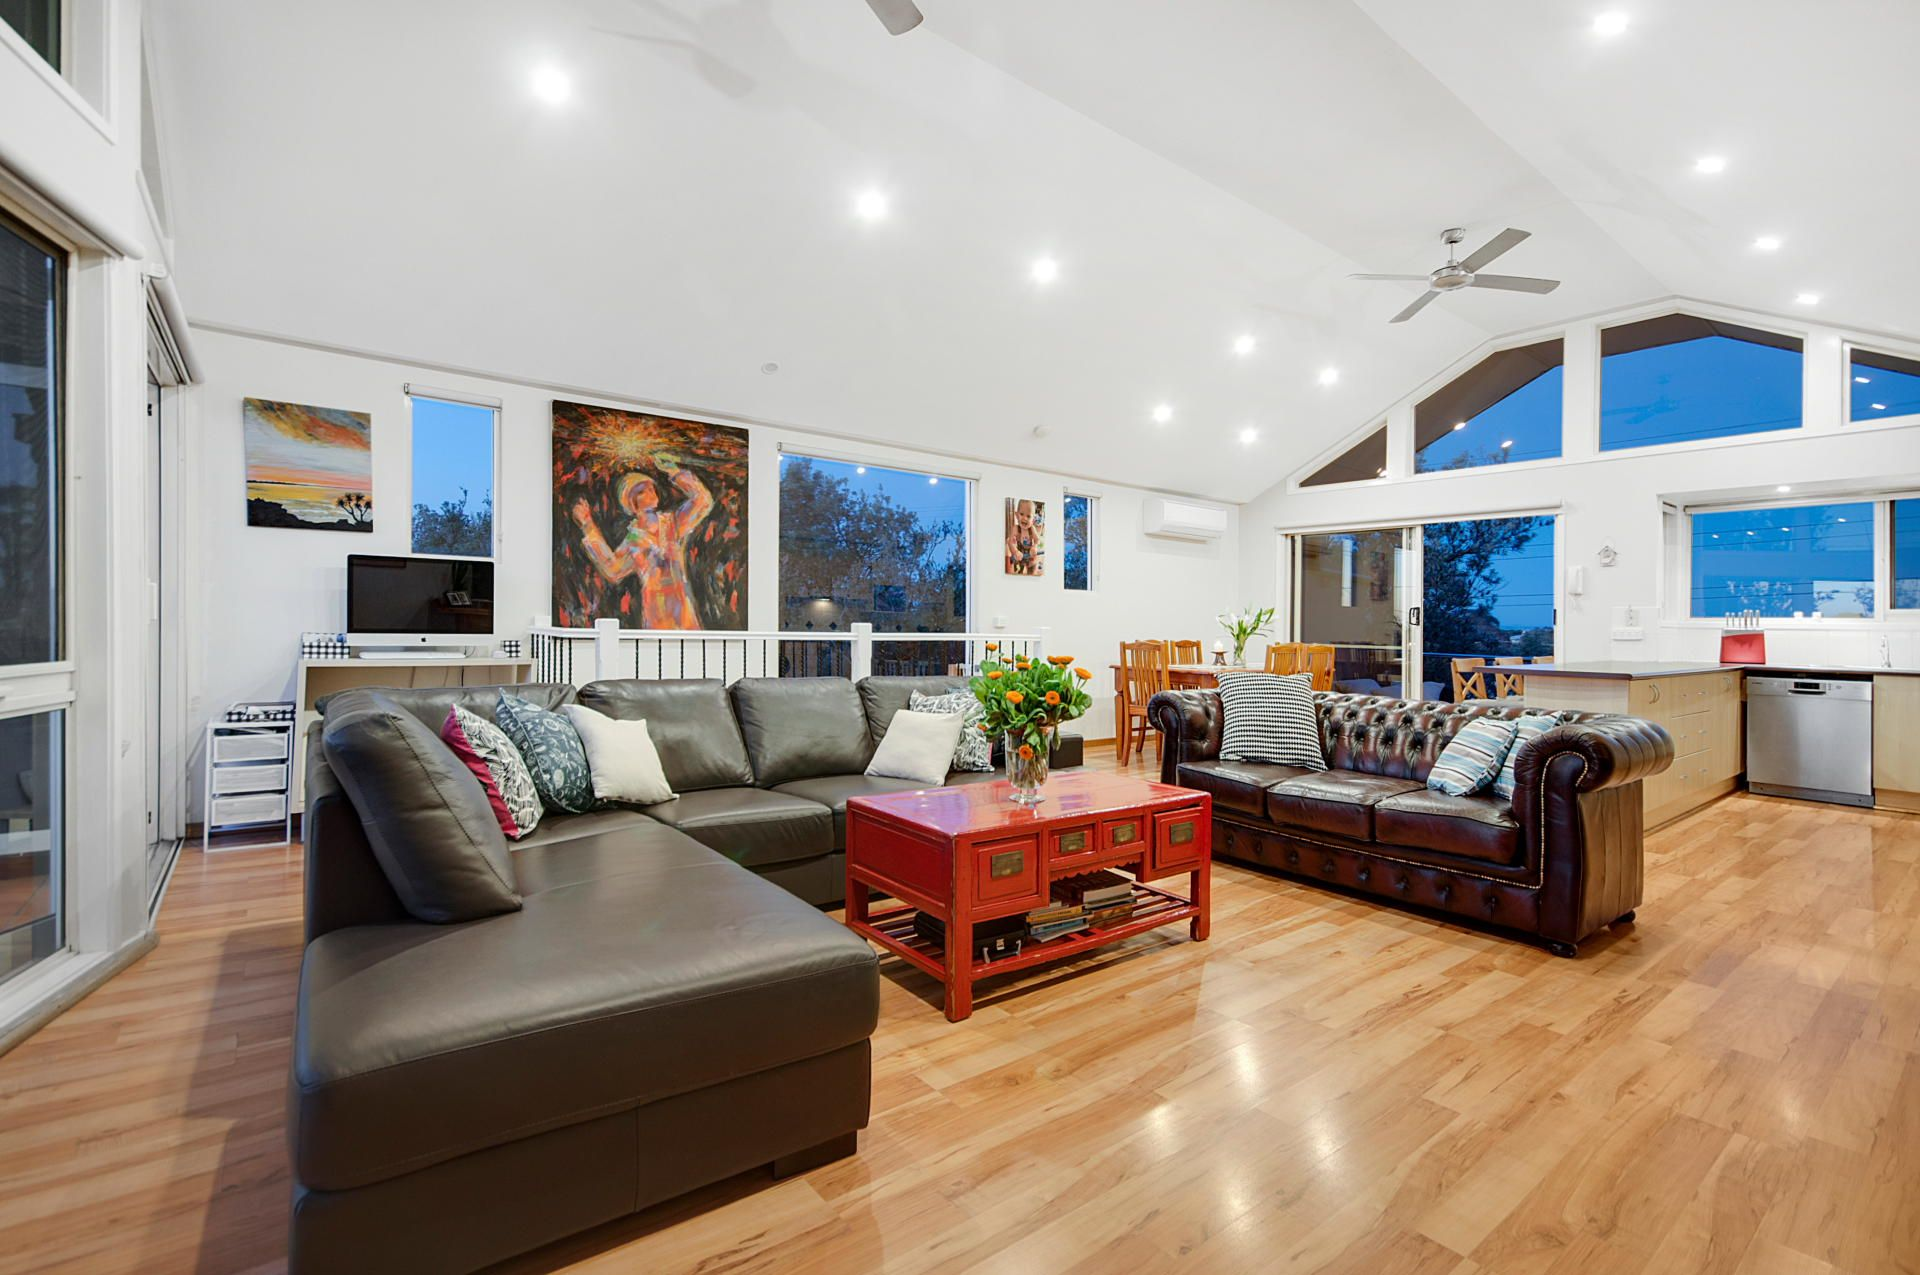 1/1 Nepean Highway, SEAFORD, VIC, 3198 - Image